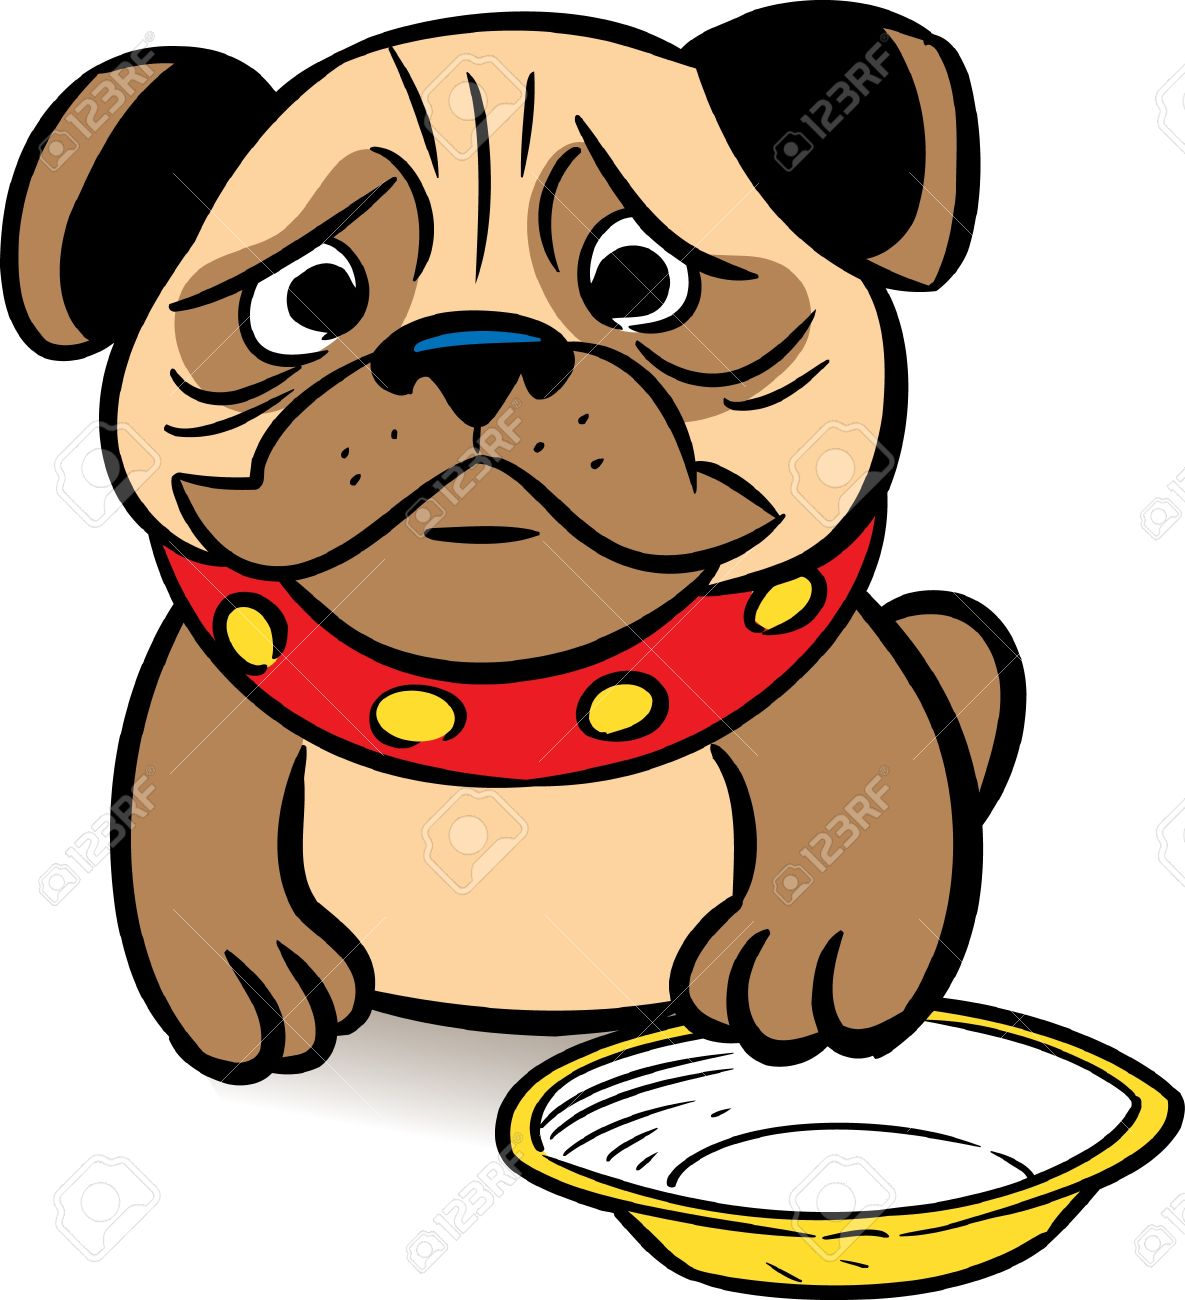 The picture shows a sad puppy pug asks a meal in a bowl.Illustration is presented in cartoon style, on a white background. Stock Vector - 11275795